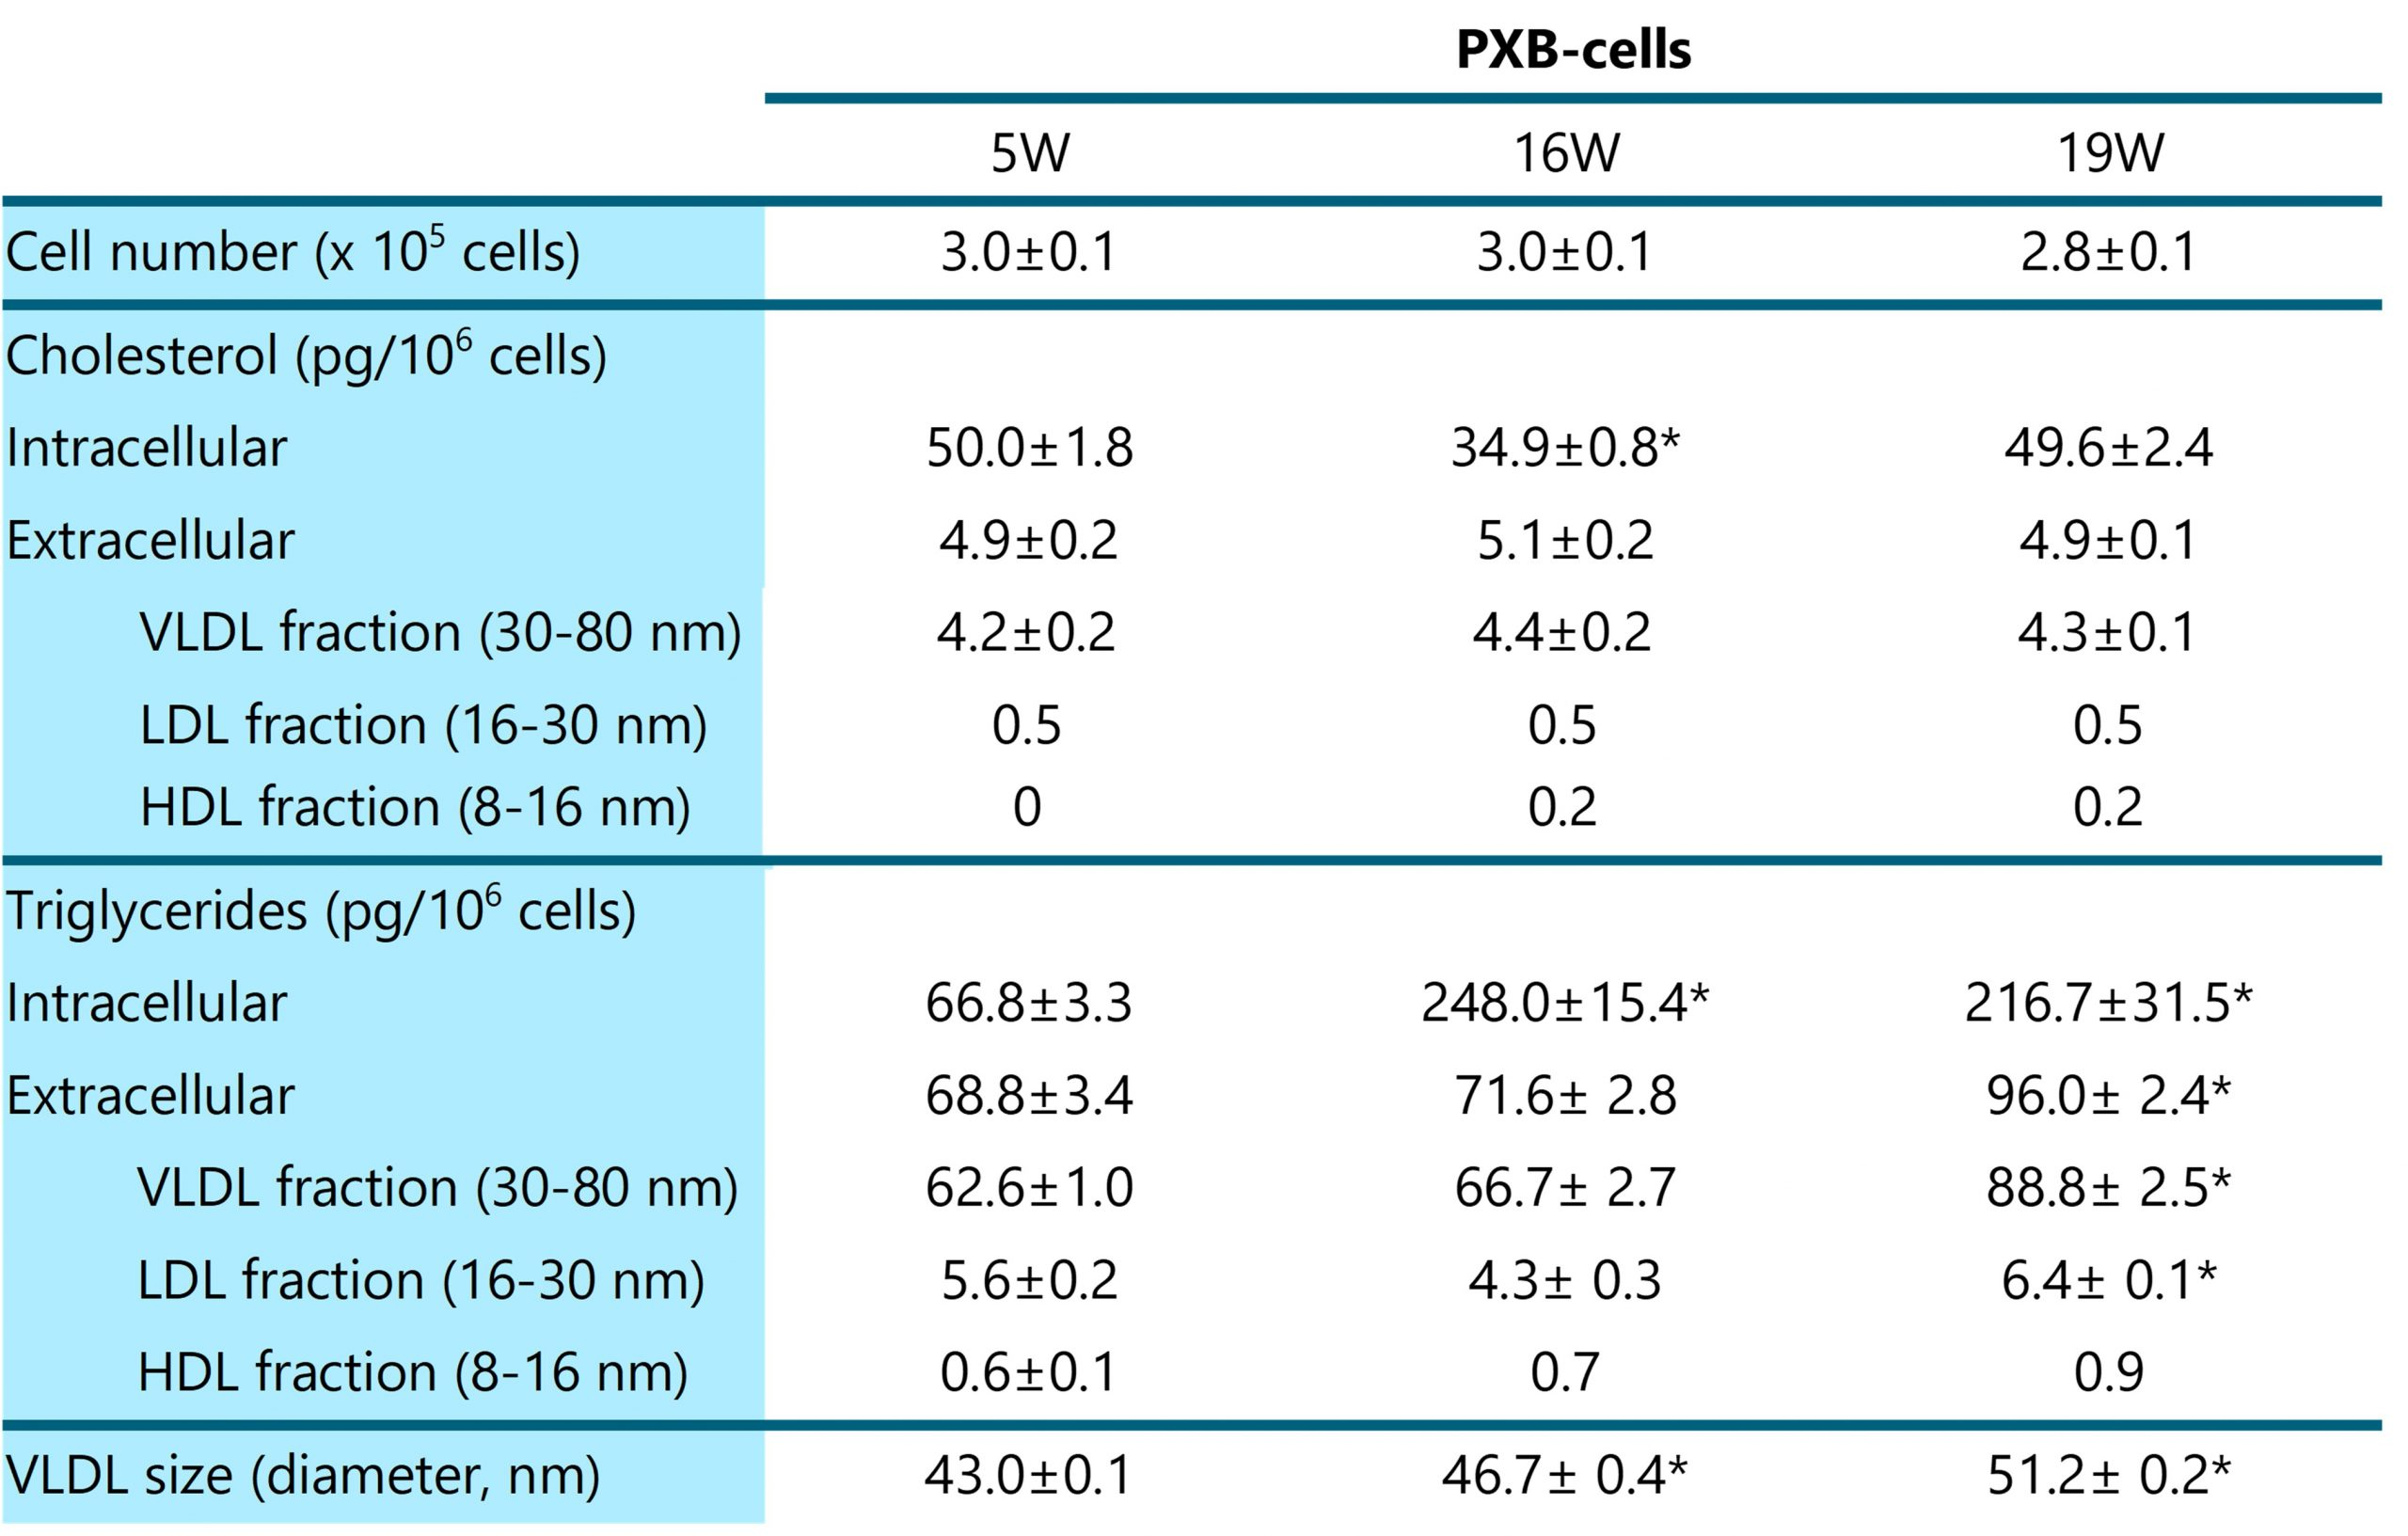 Table 1. Intra- and extracellular lipid contents in NAFL-like PXB-cells